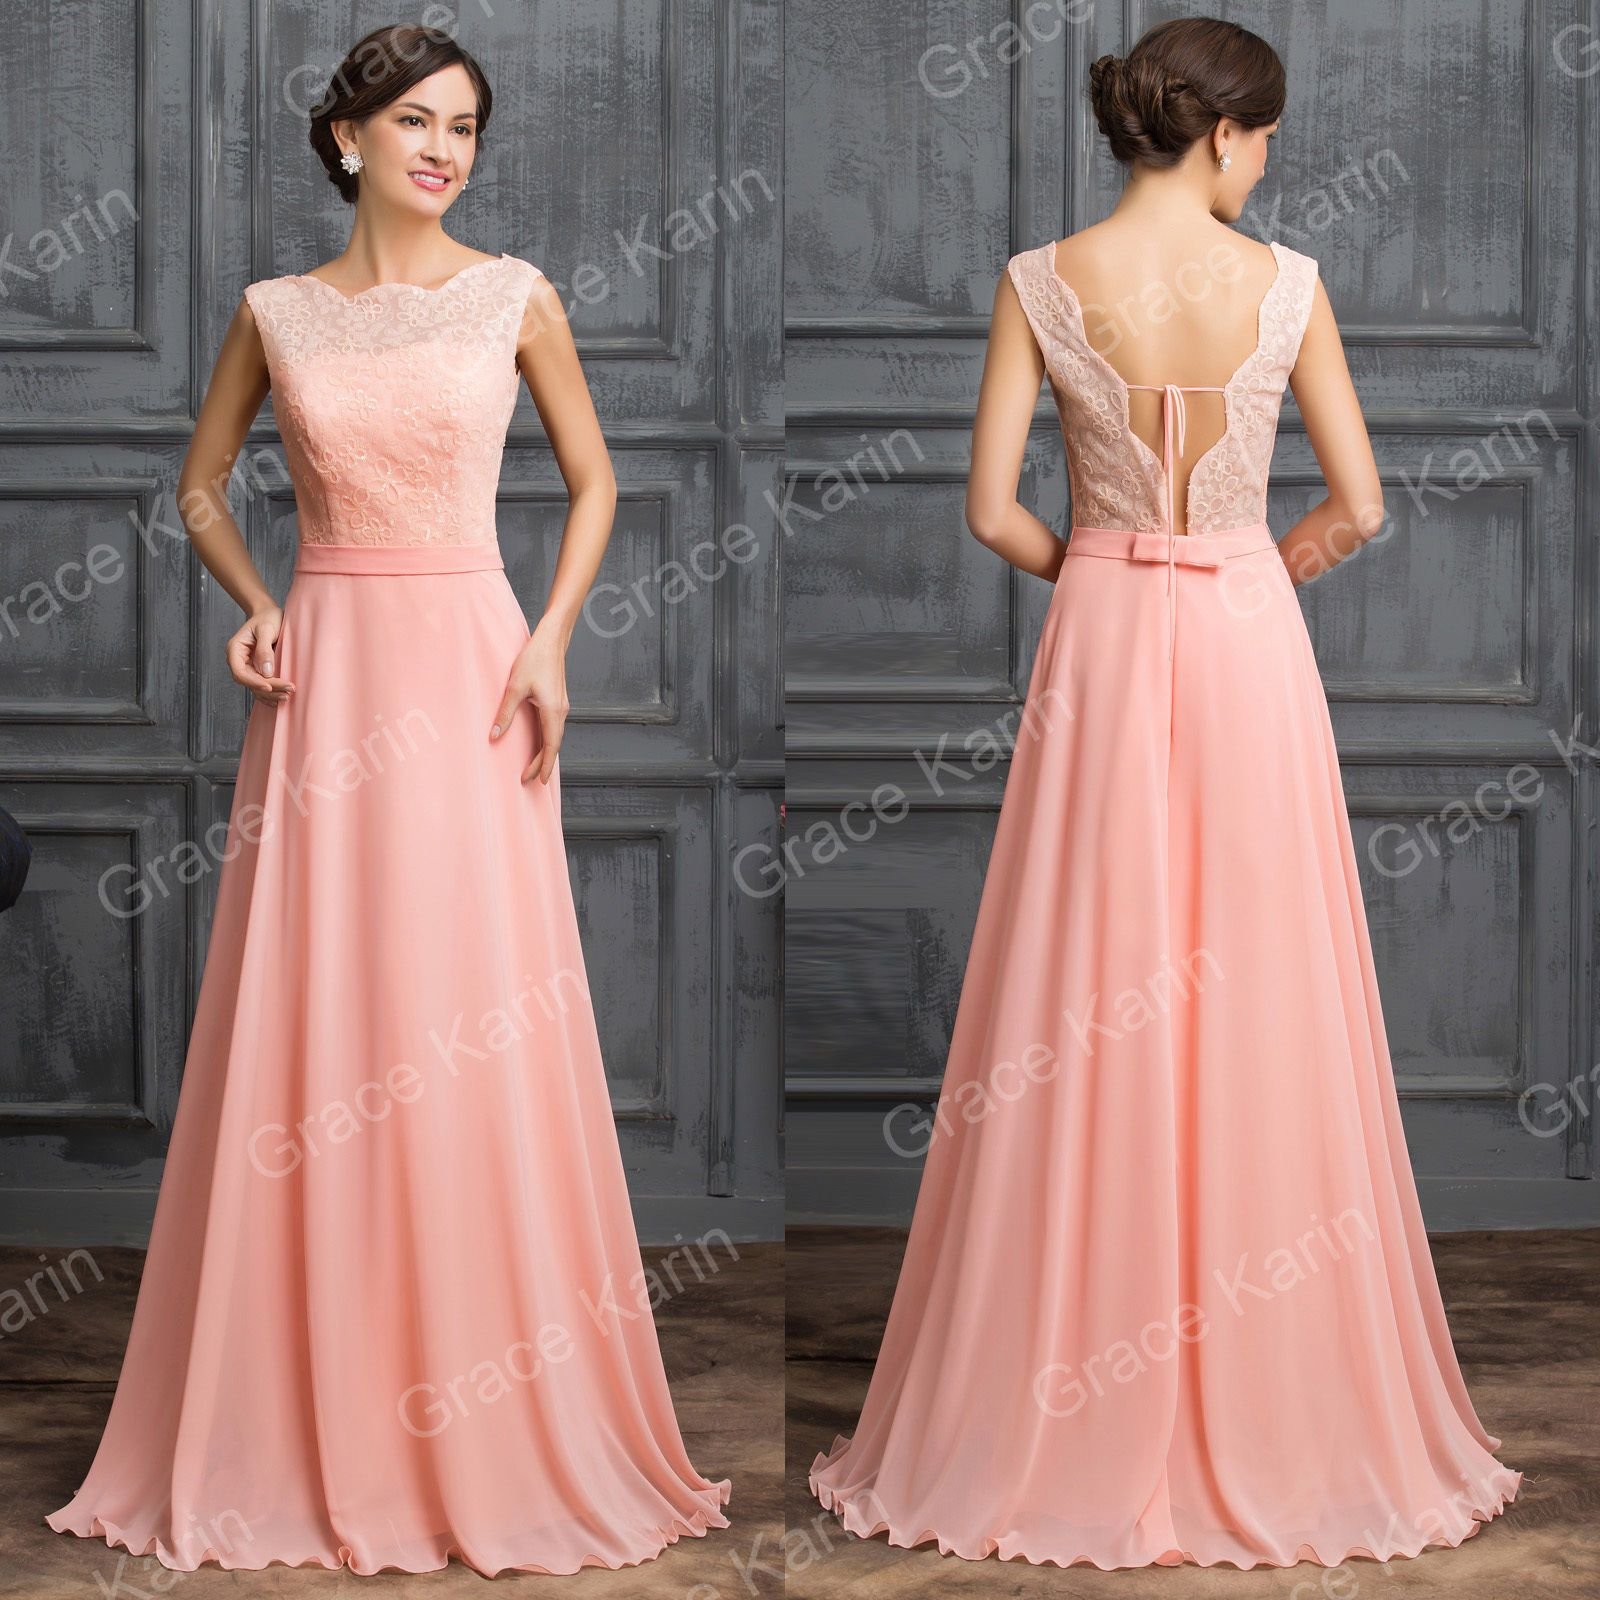 Women Lace Formal Long Homecoming Bridesmaid Wedding Prom Light Pink ...